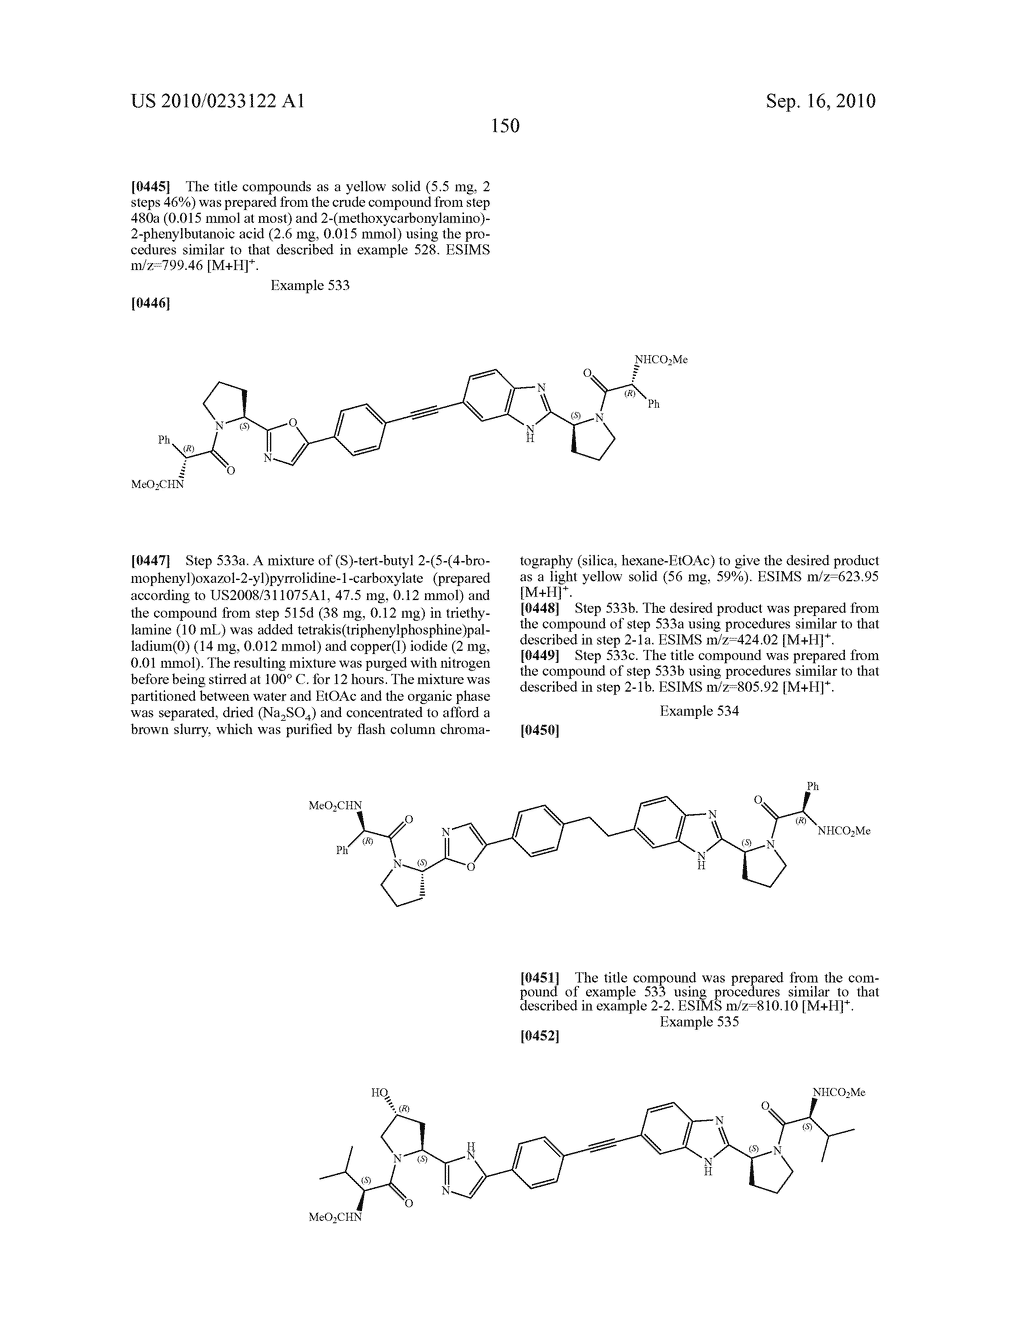 NOVEL BENZIMIDAZOLE DERIVATIVES - diagram, schematic, and image 151